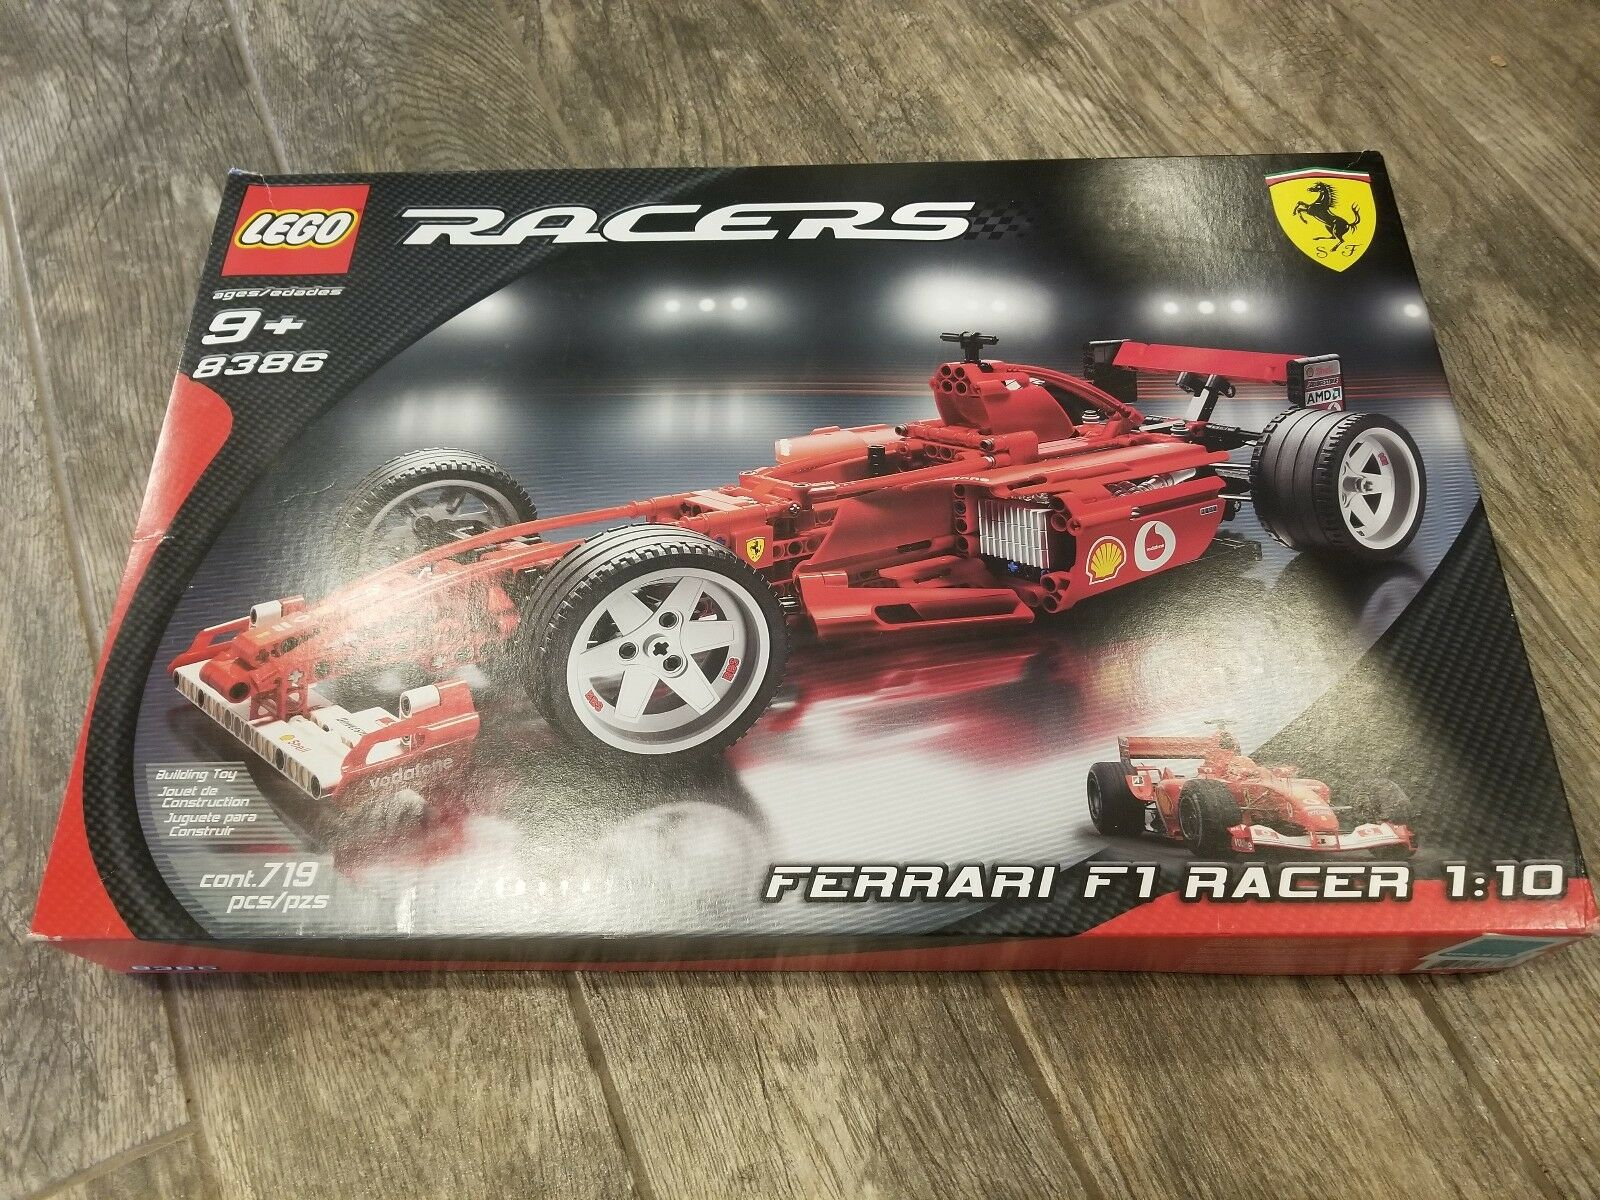 4 Lego Technic Wheels And Tire Ferrari F1 8386 Rader For Sale Online Ebay